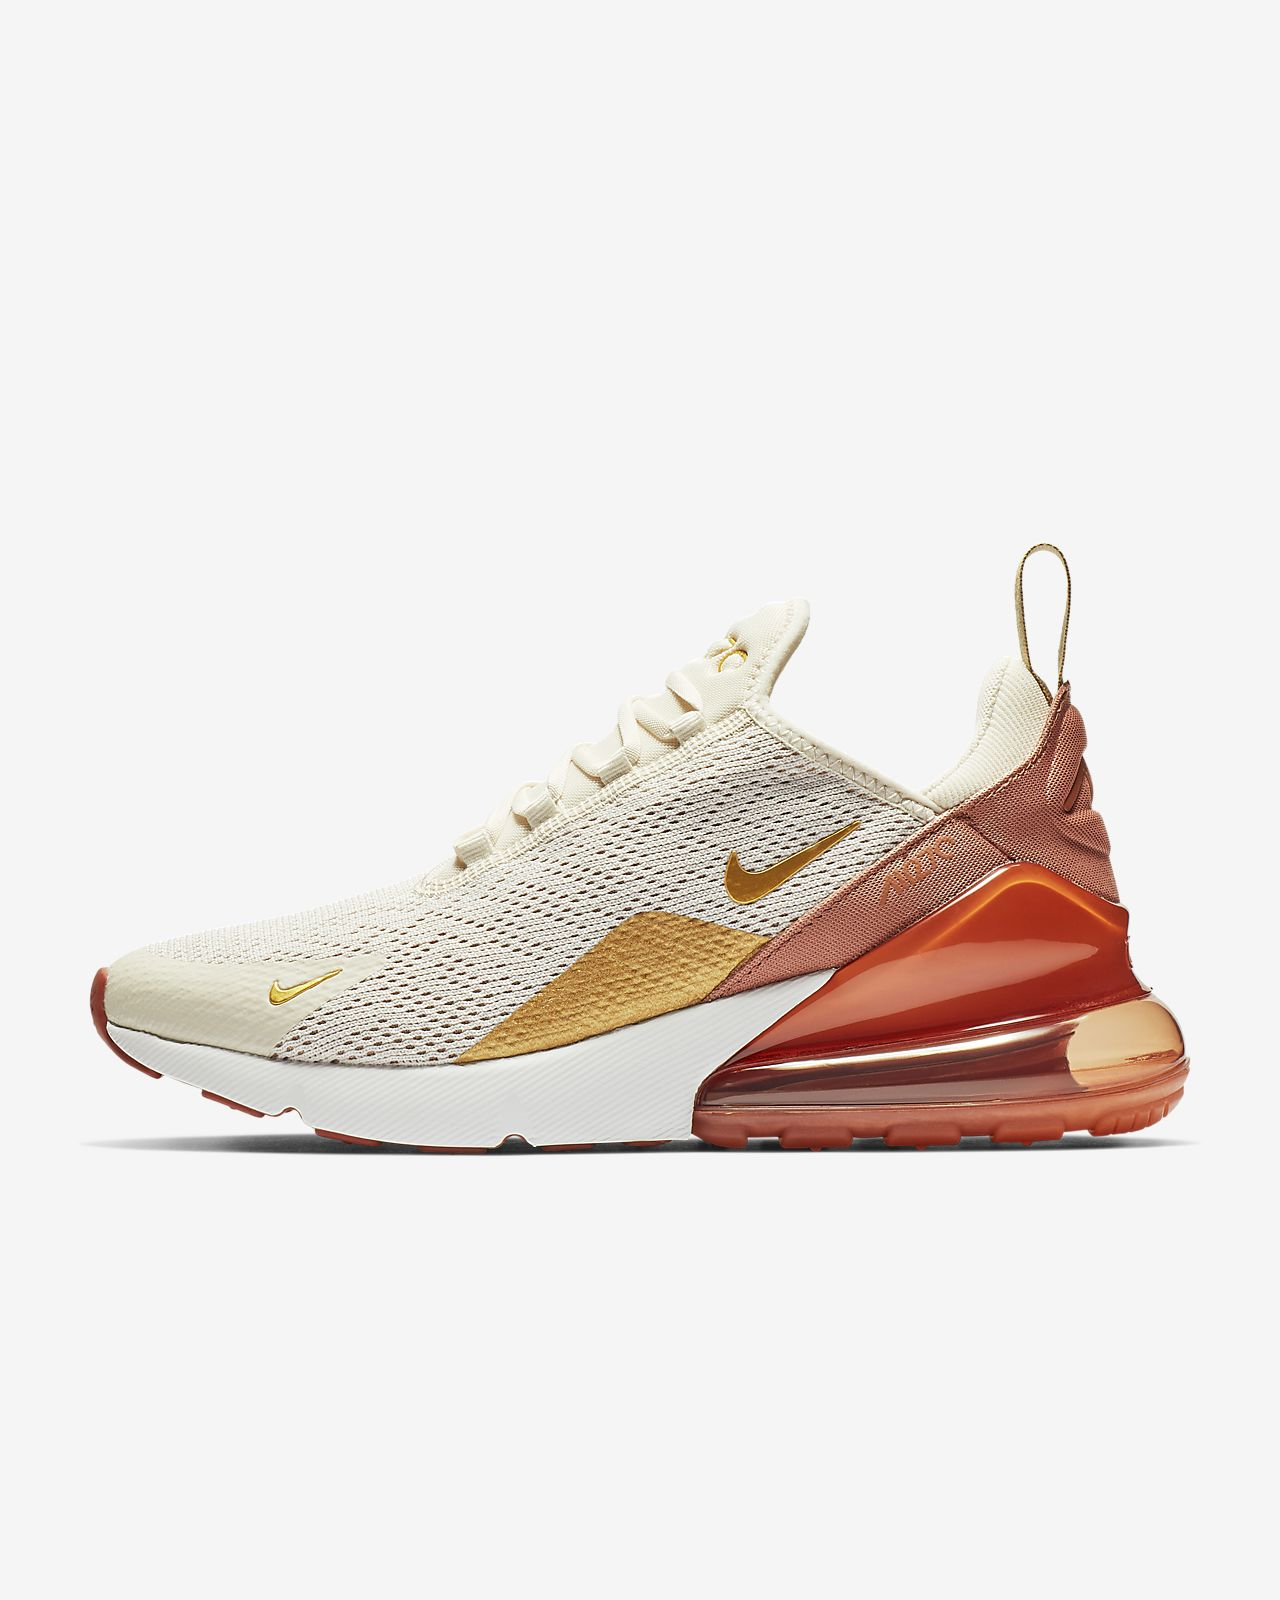 new arrival c0f90 90ae0 ... Nike Air Max 270 Womens Shoe